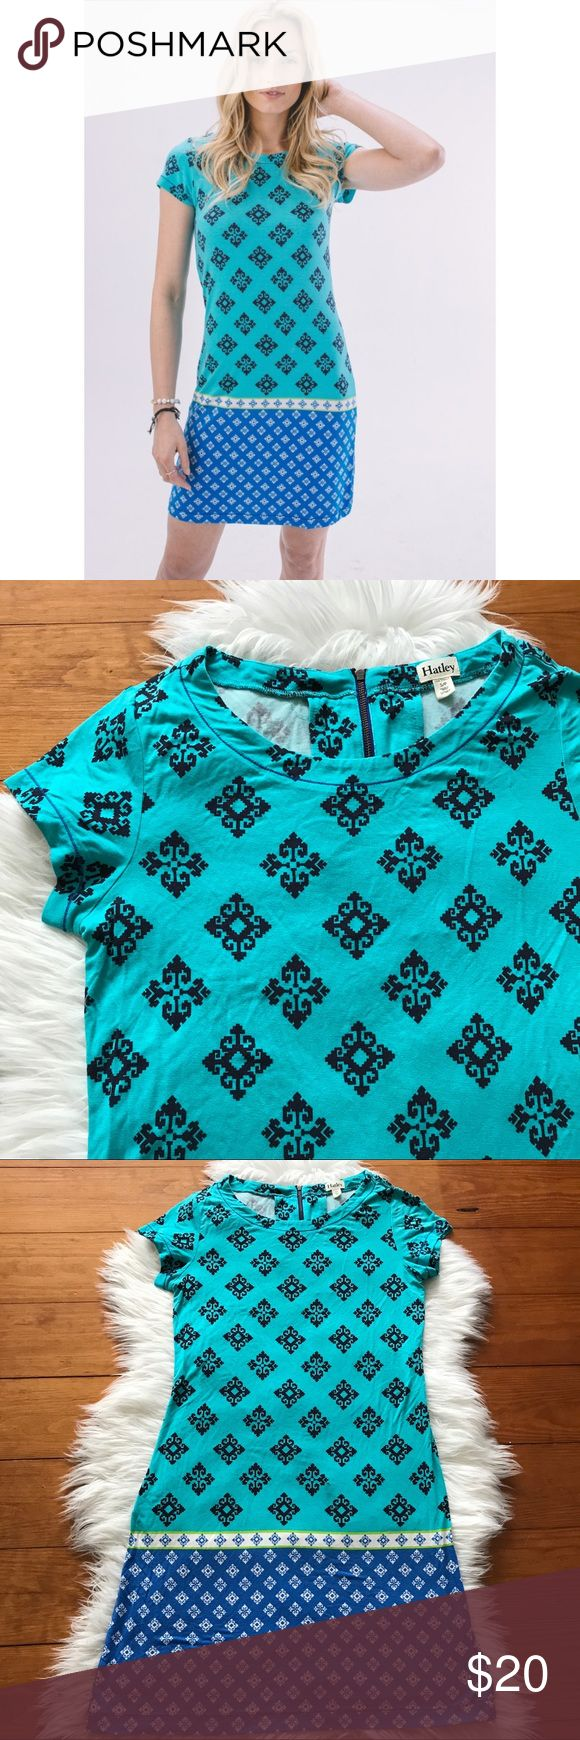 "Hatley Green Blue Patterned Aztec T Shirt Dress Please note that there is some minimal wash wear! Measurements: Armpit to armpit: 16"" Length: 35"" *E27 Hatley Dresses"